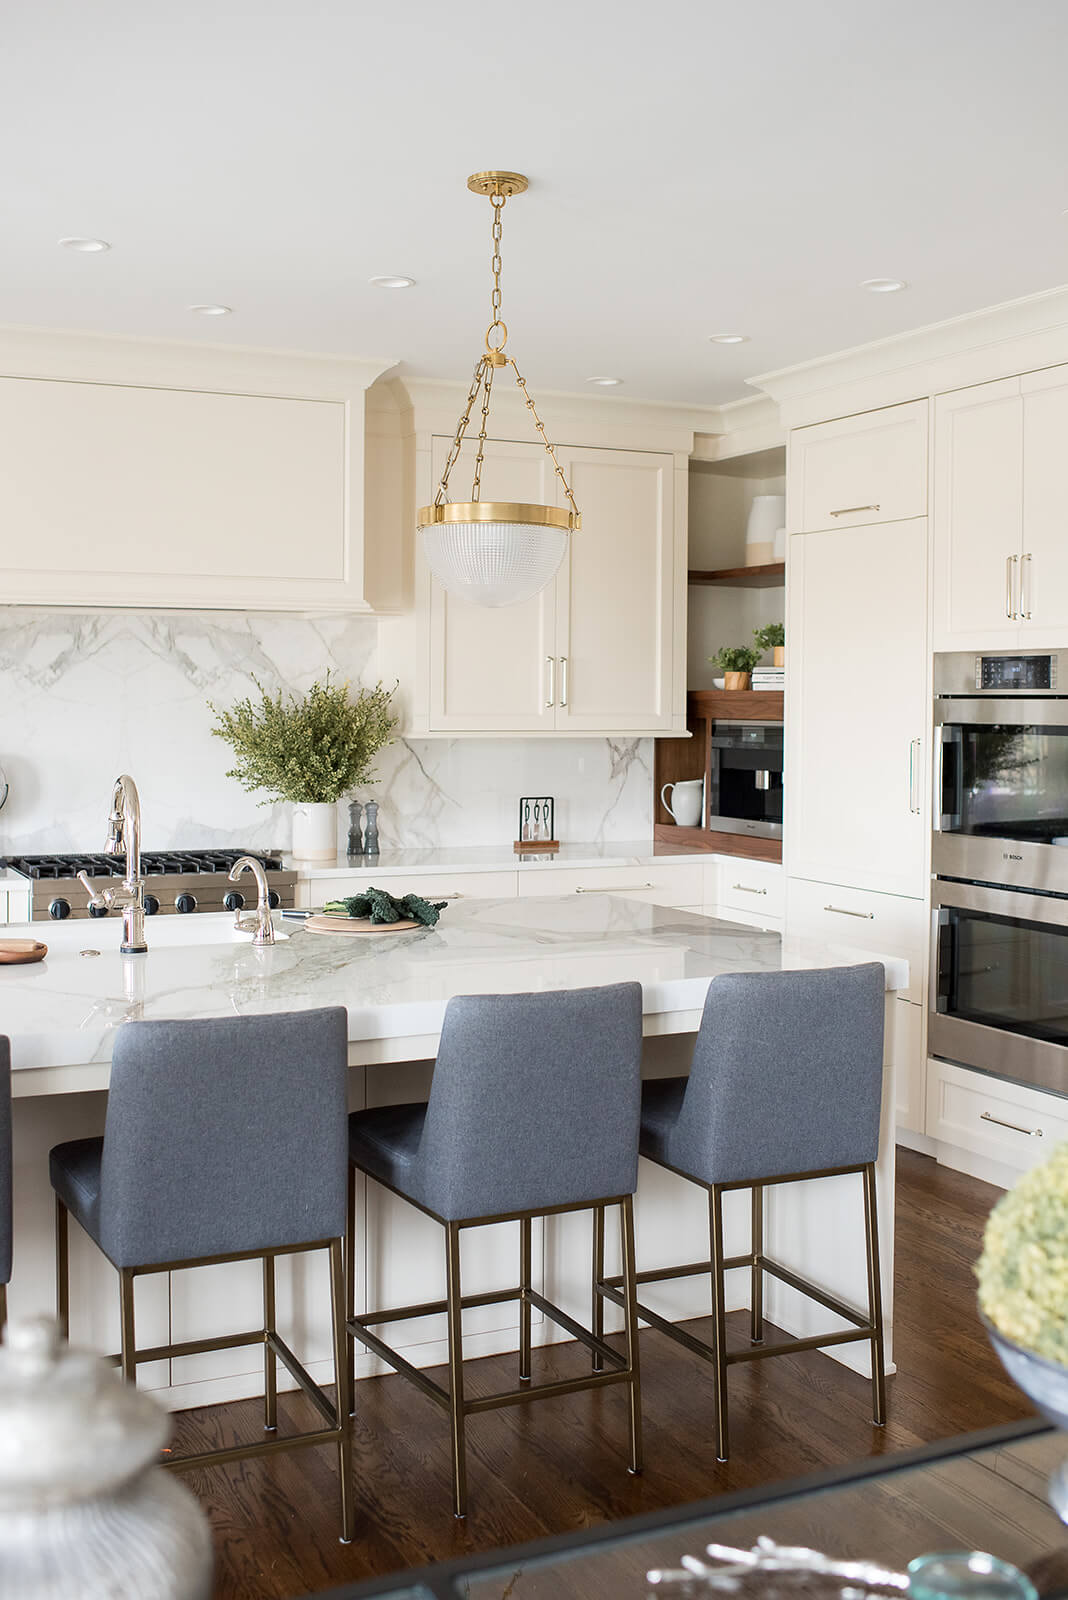 Perfectly Planned by Conceptual Kitchens